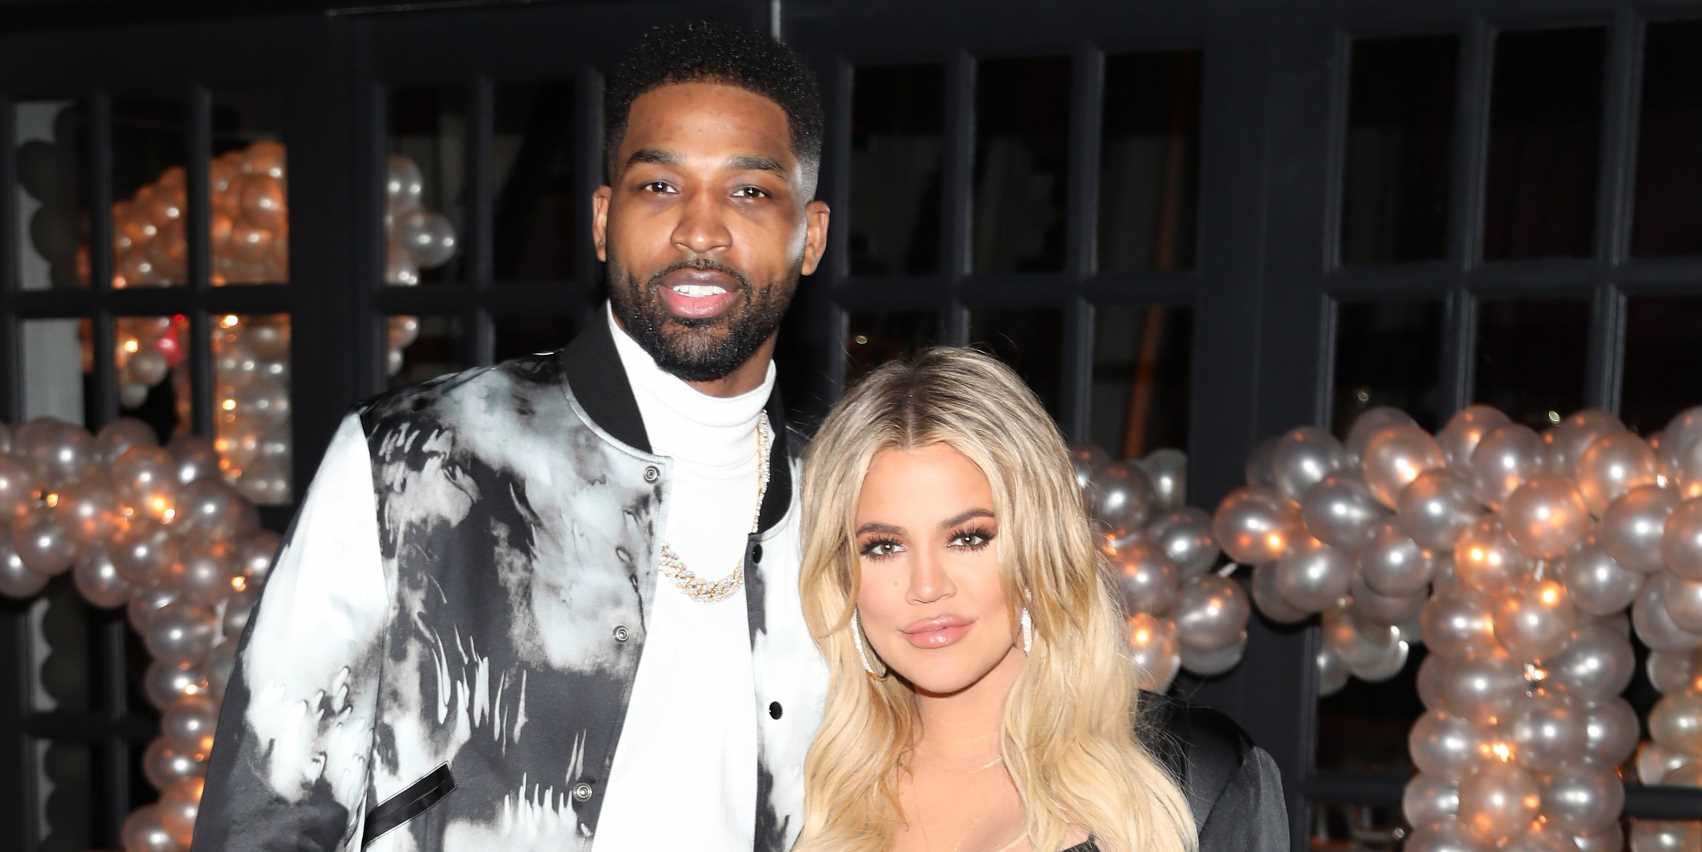 Khloé Kardashian Thought She Was Pregnant Just Weeks Before Tristan Cheated With Jordyn